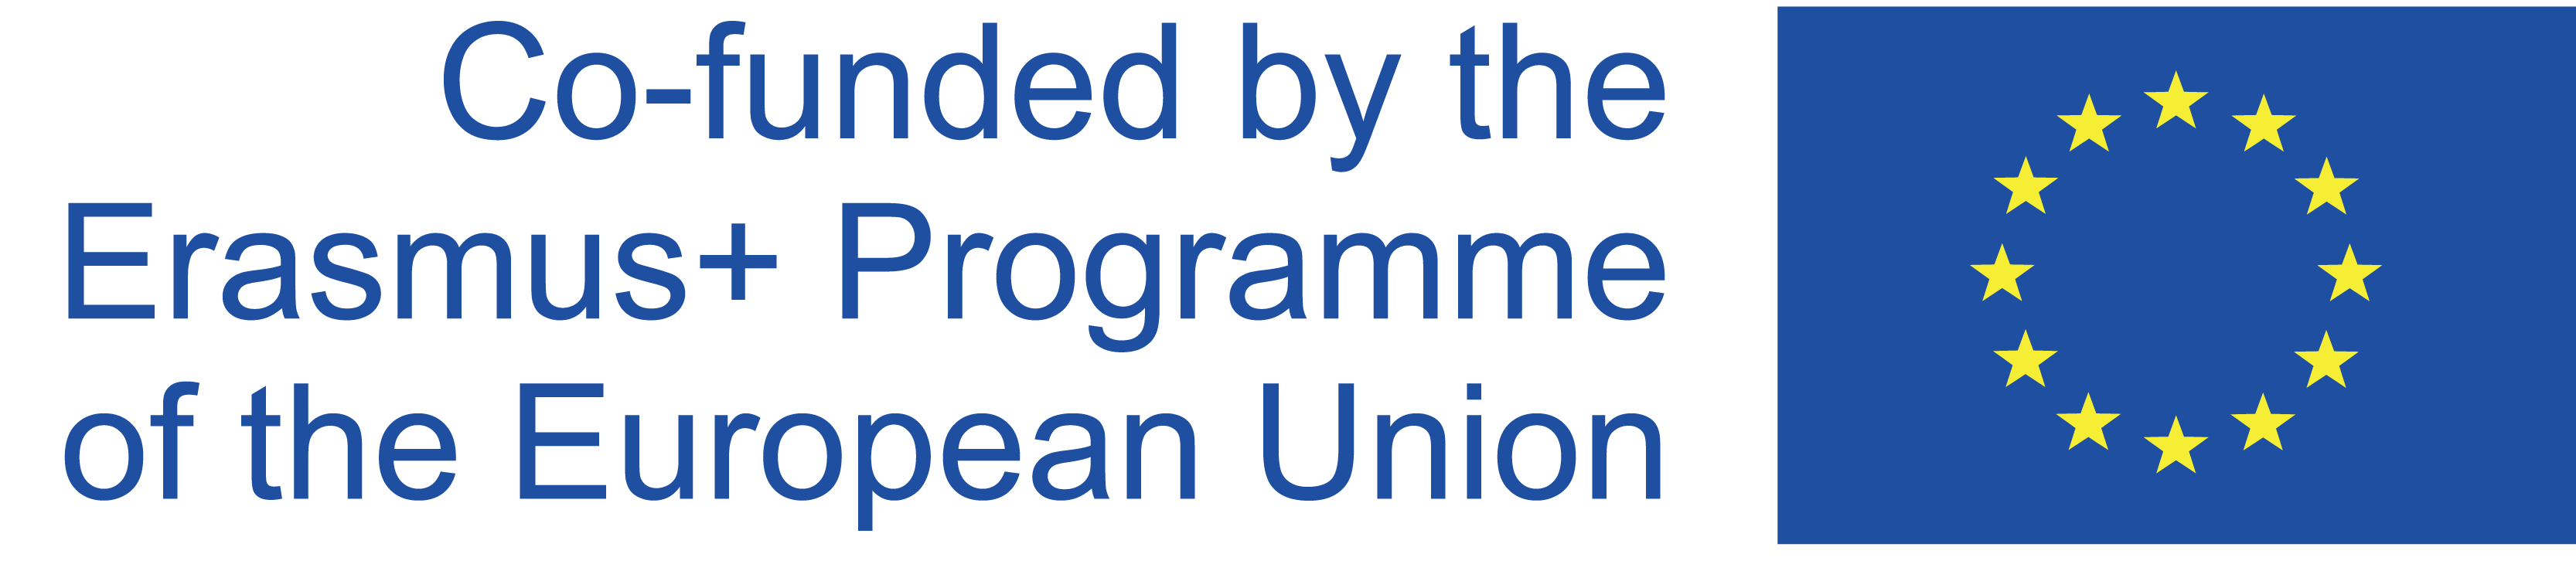 Erasmus+ logo - sponsored by Erasmus plus